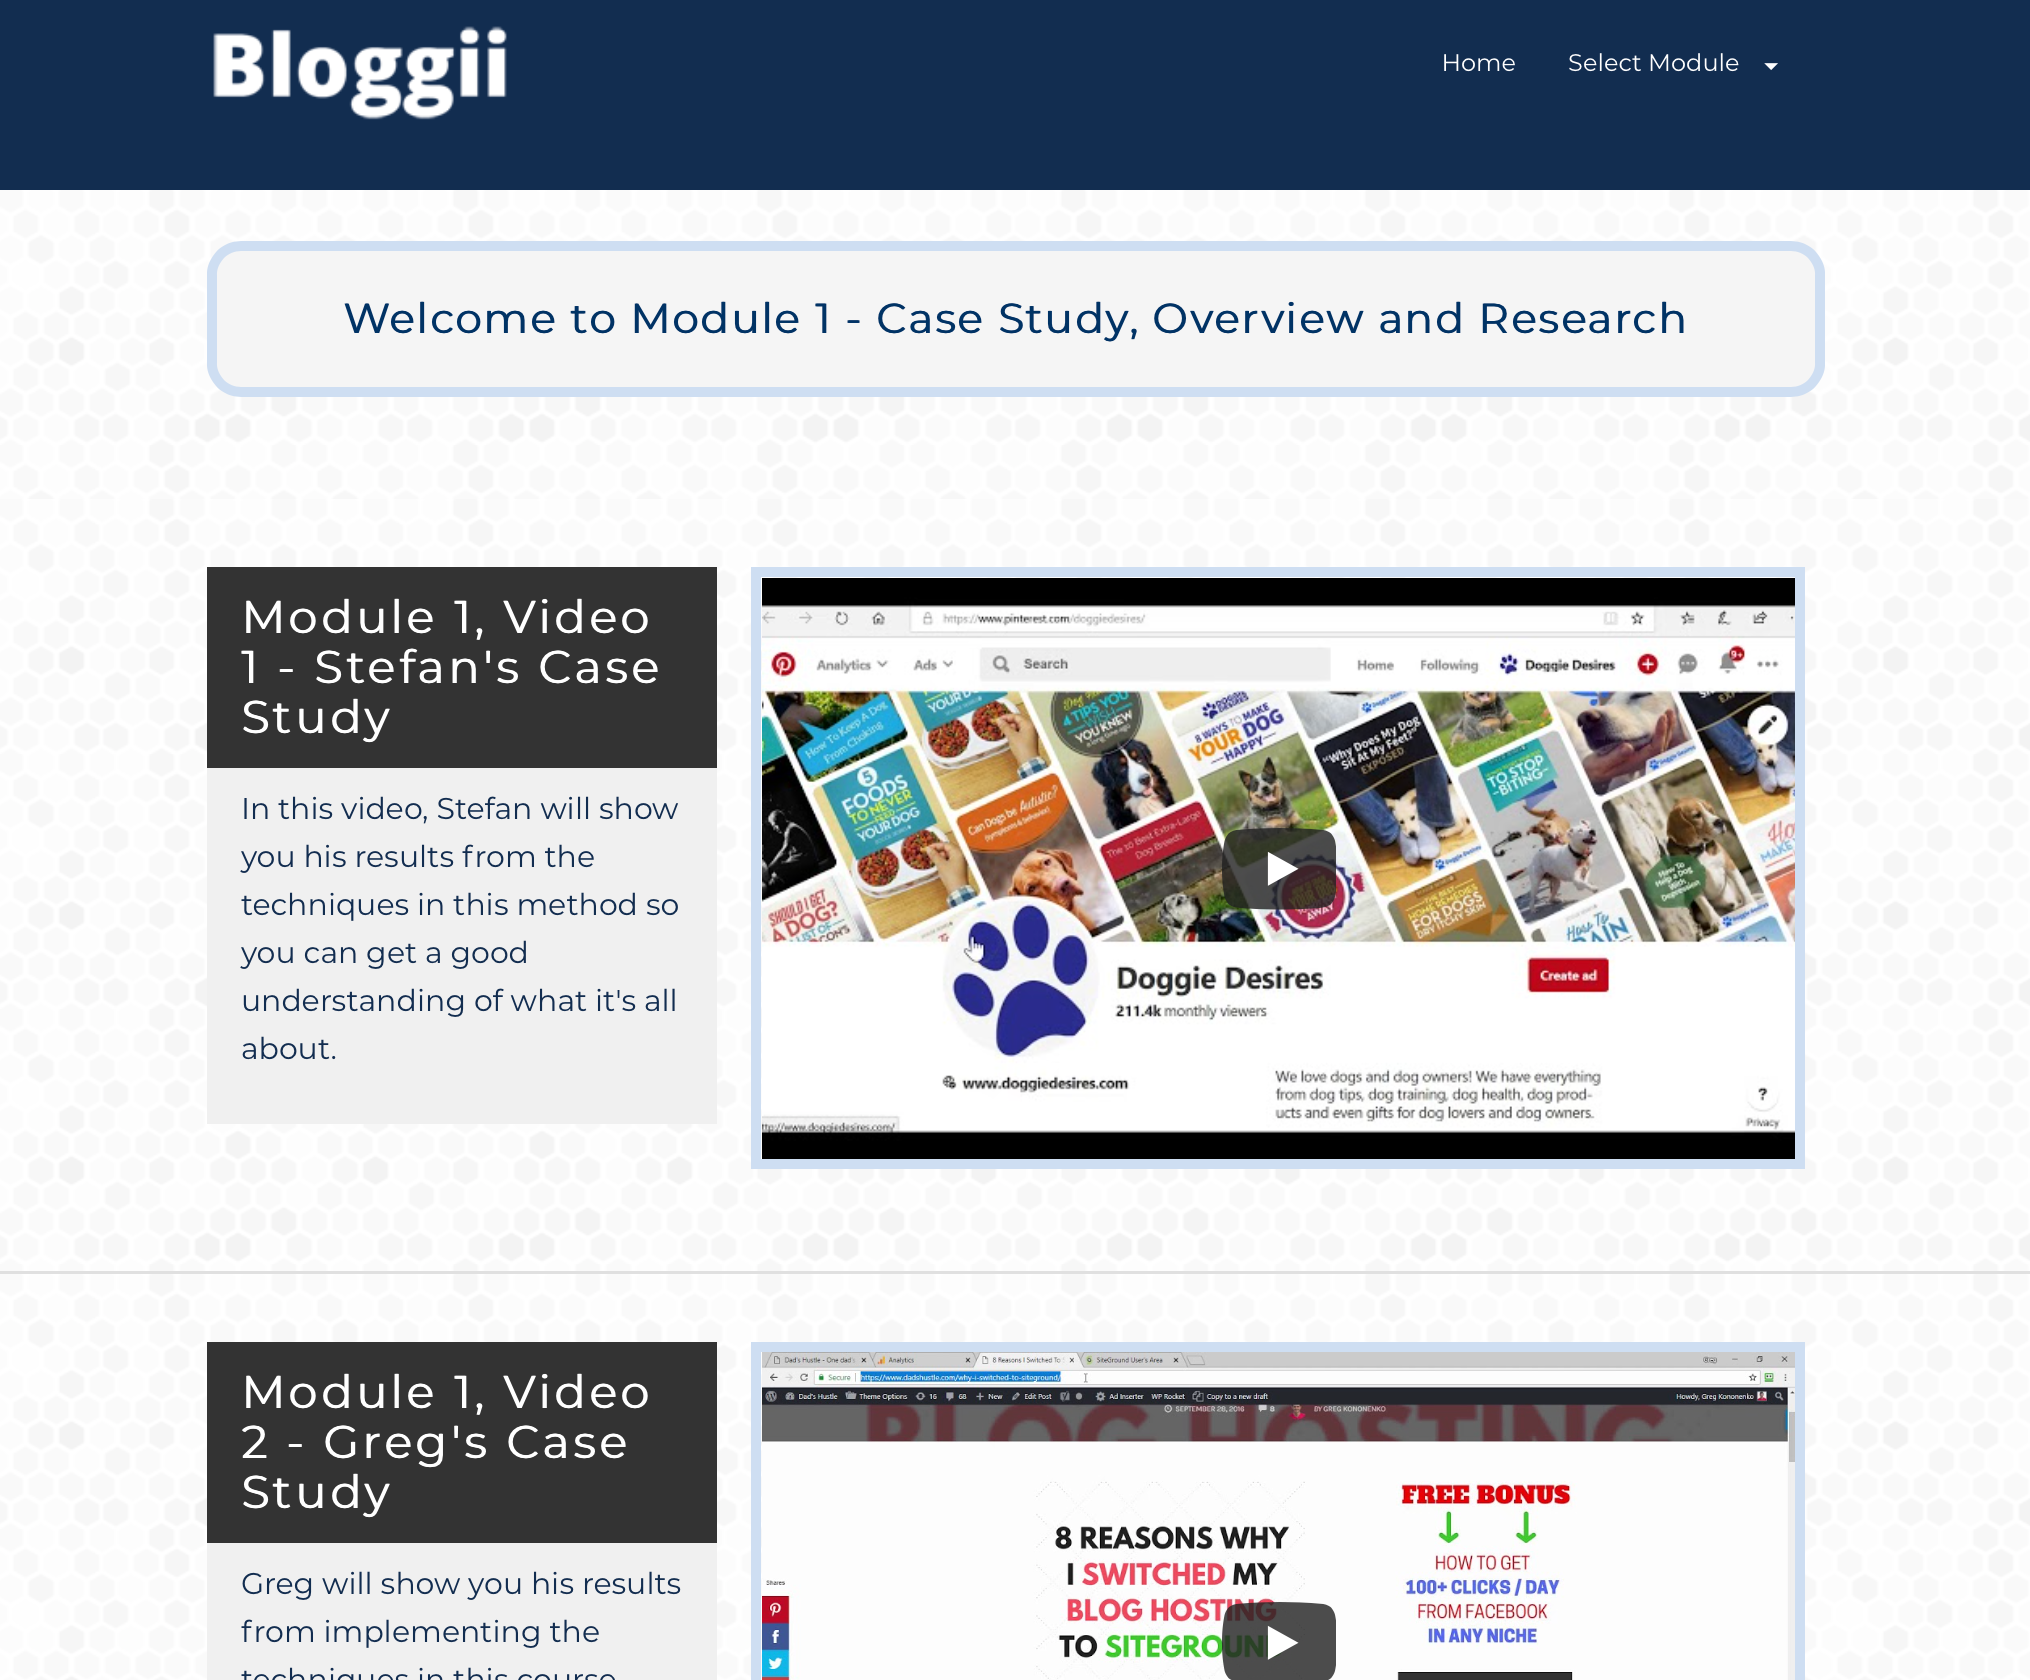 bloggii review 4